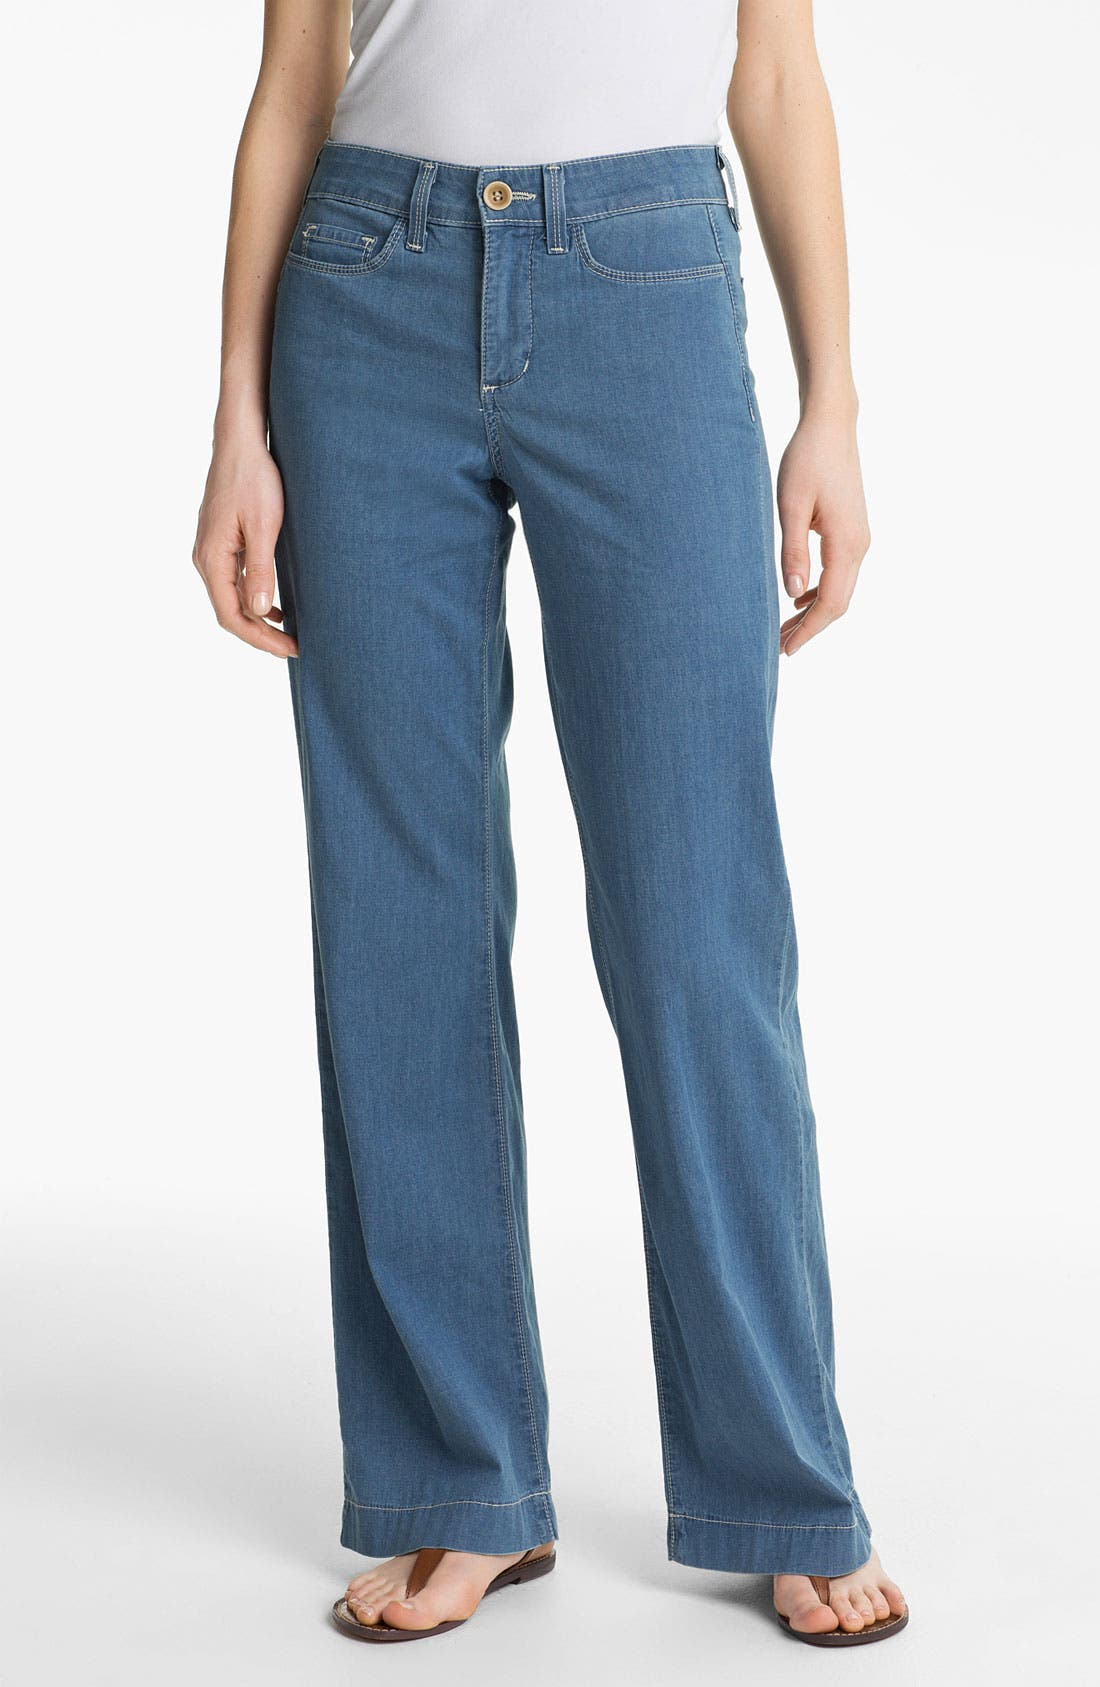 Alternate Image 1 Selected - NYDJ 'Lizzie' Wide Leg Stretch Jeans